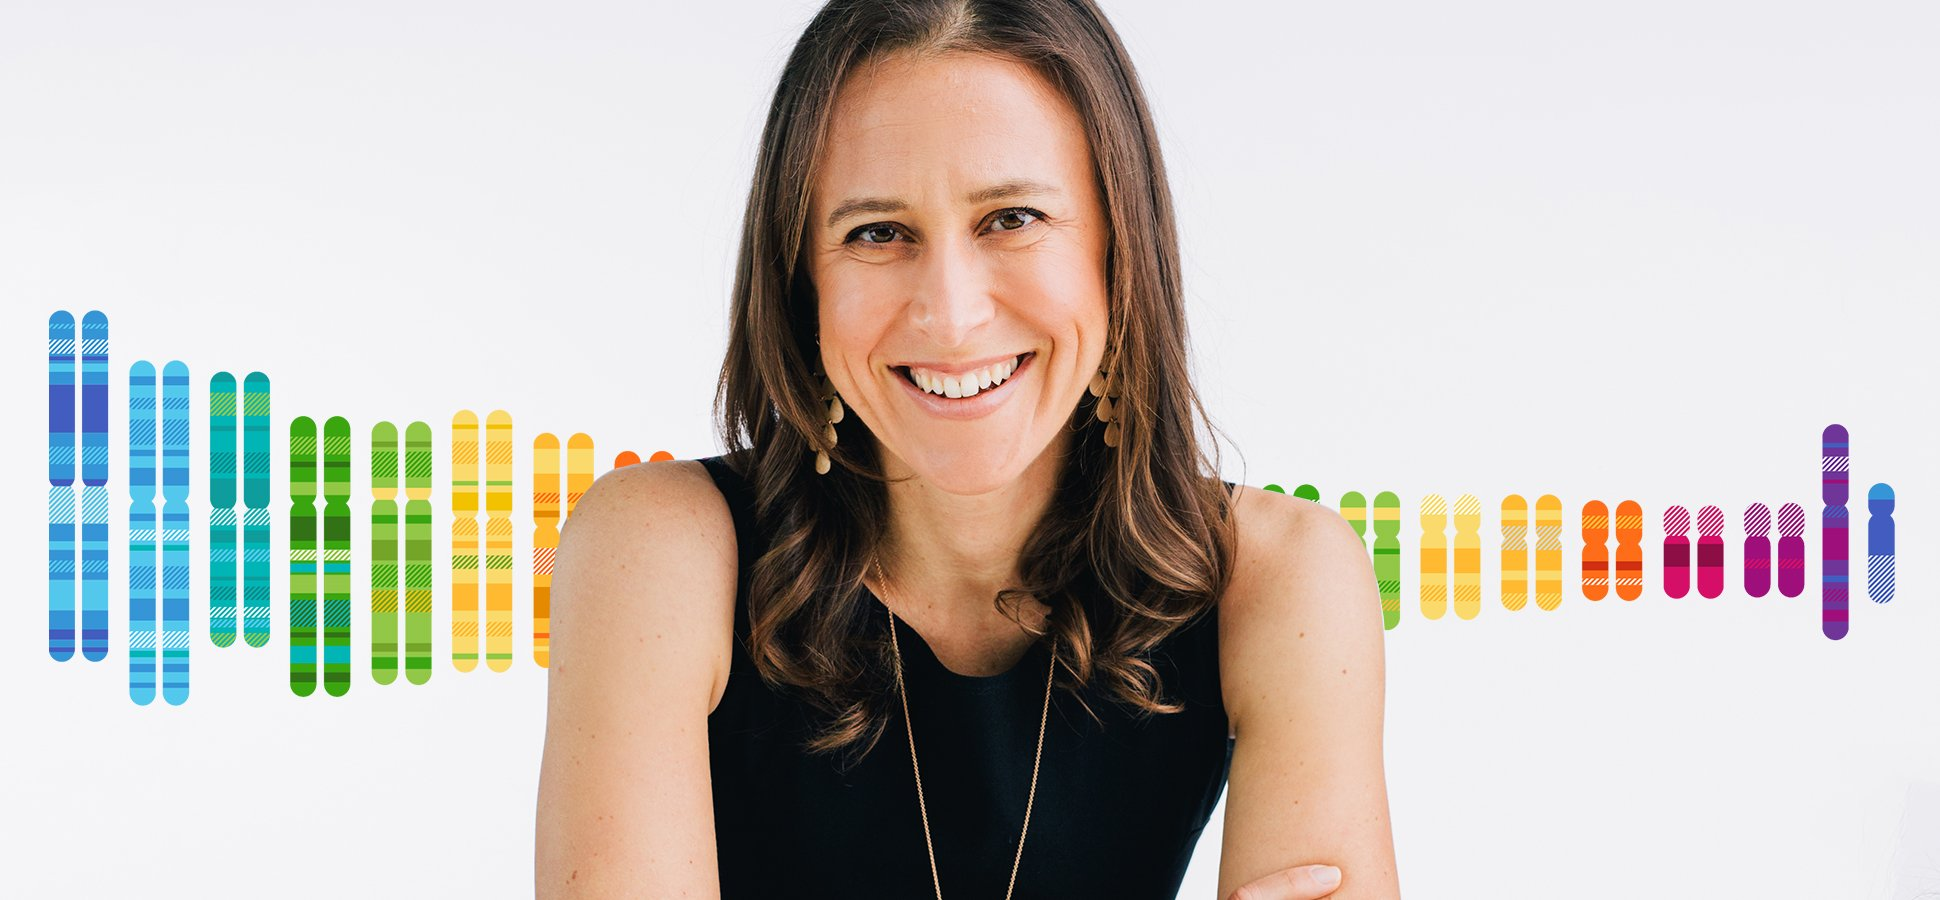 23andMe Knows What Diseases Are In Your DNA. Now It's Looking for the Cures